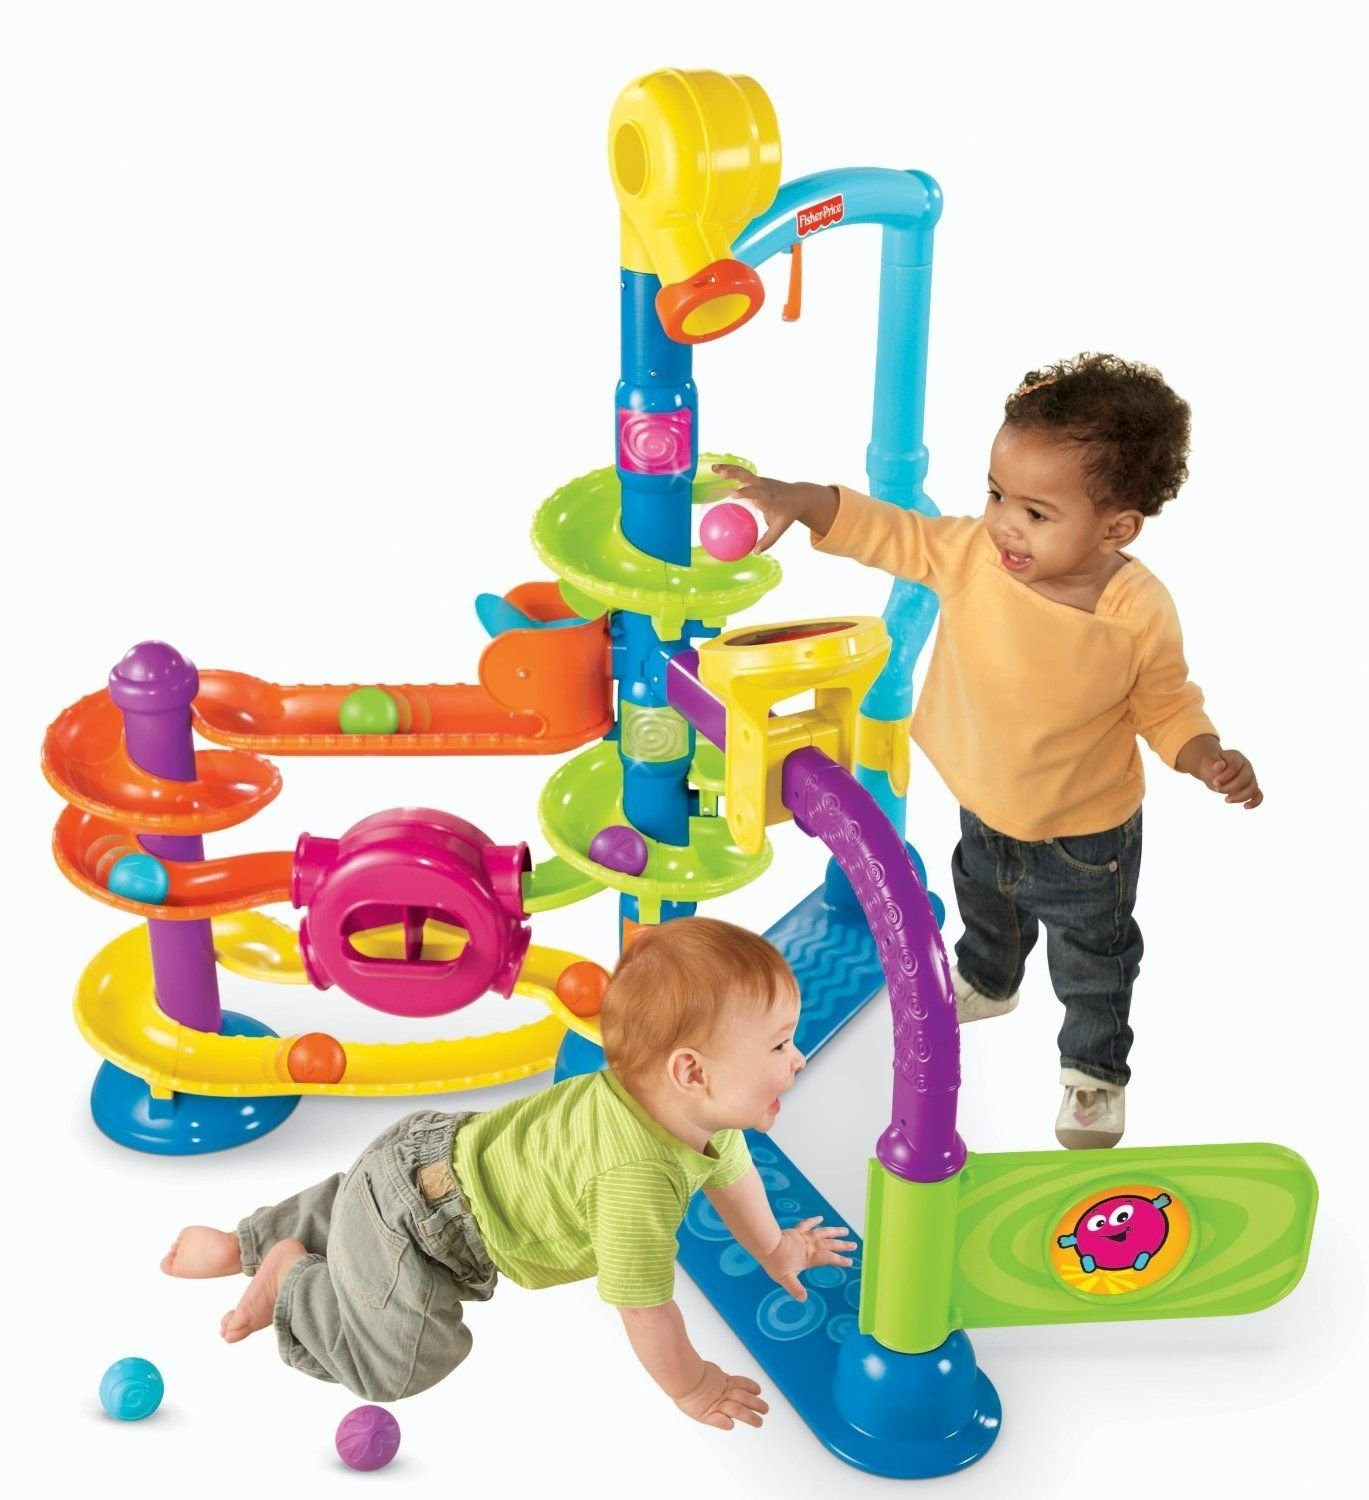 10 Unique Gift Ideas For One Year Old Baby Girl amazon fisher price cruise and groove ballapalooza toys 2 2021